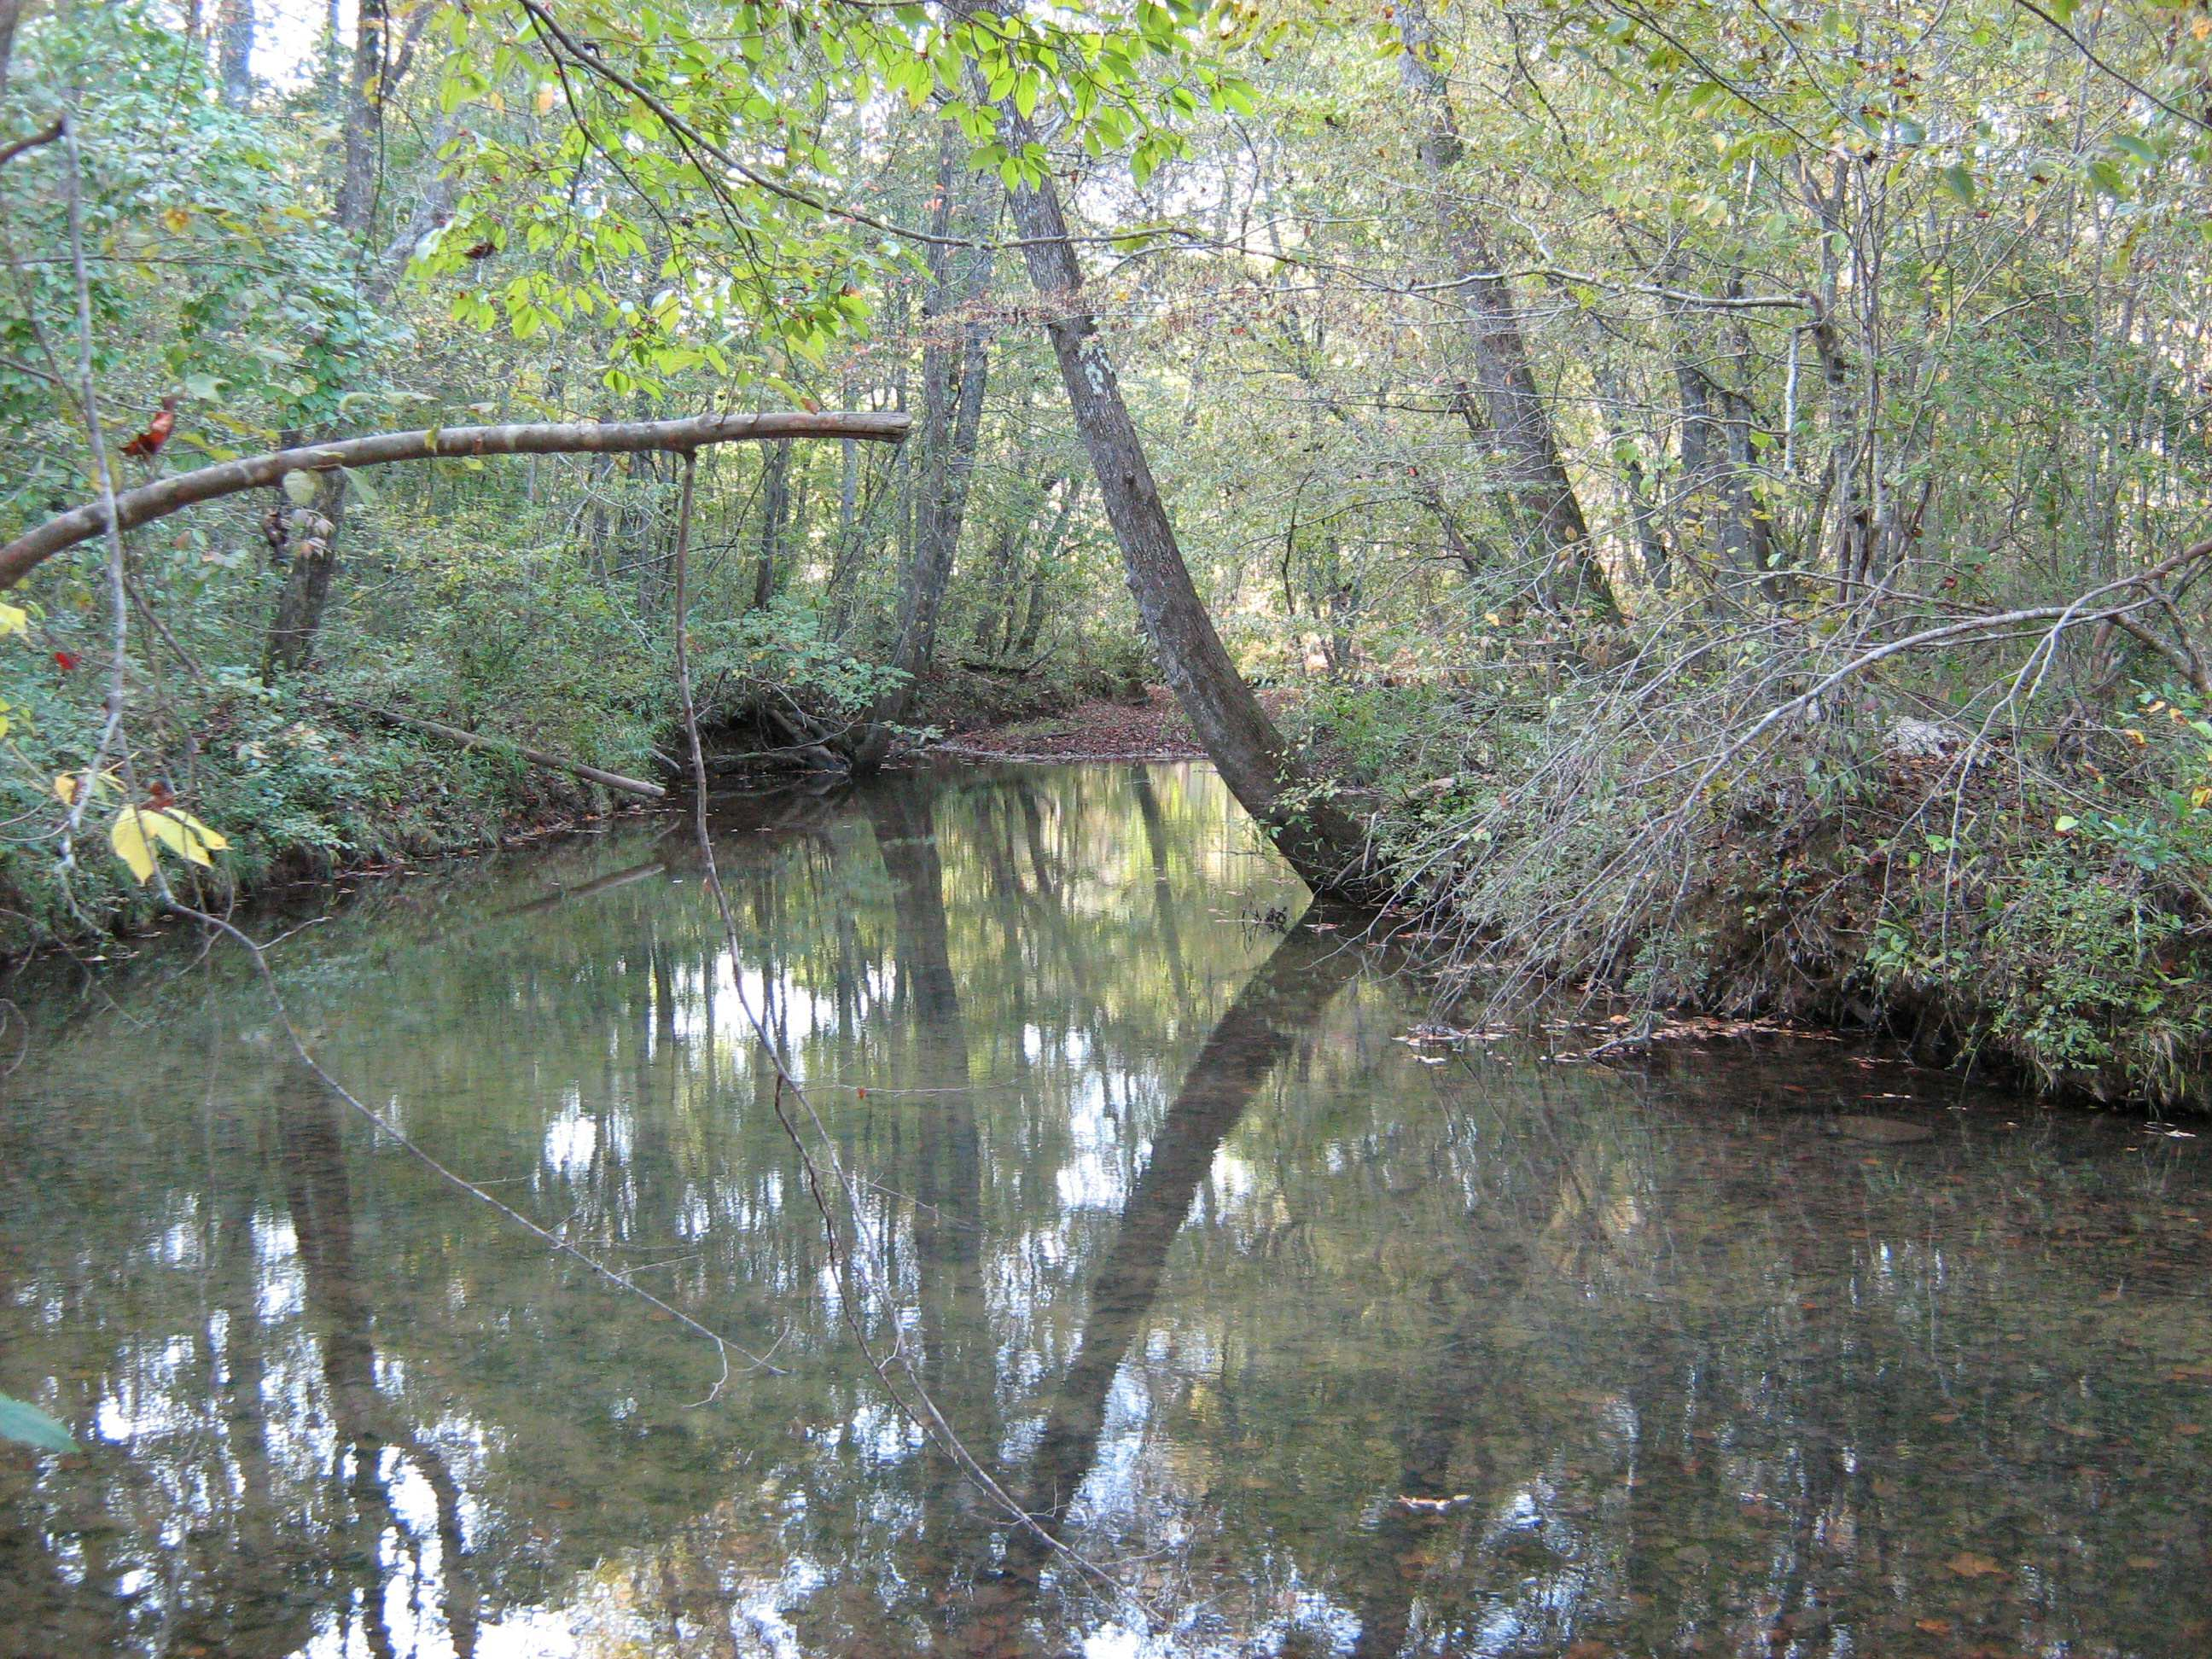 Little Indian Creek goes through the property for 1 mile